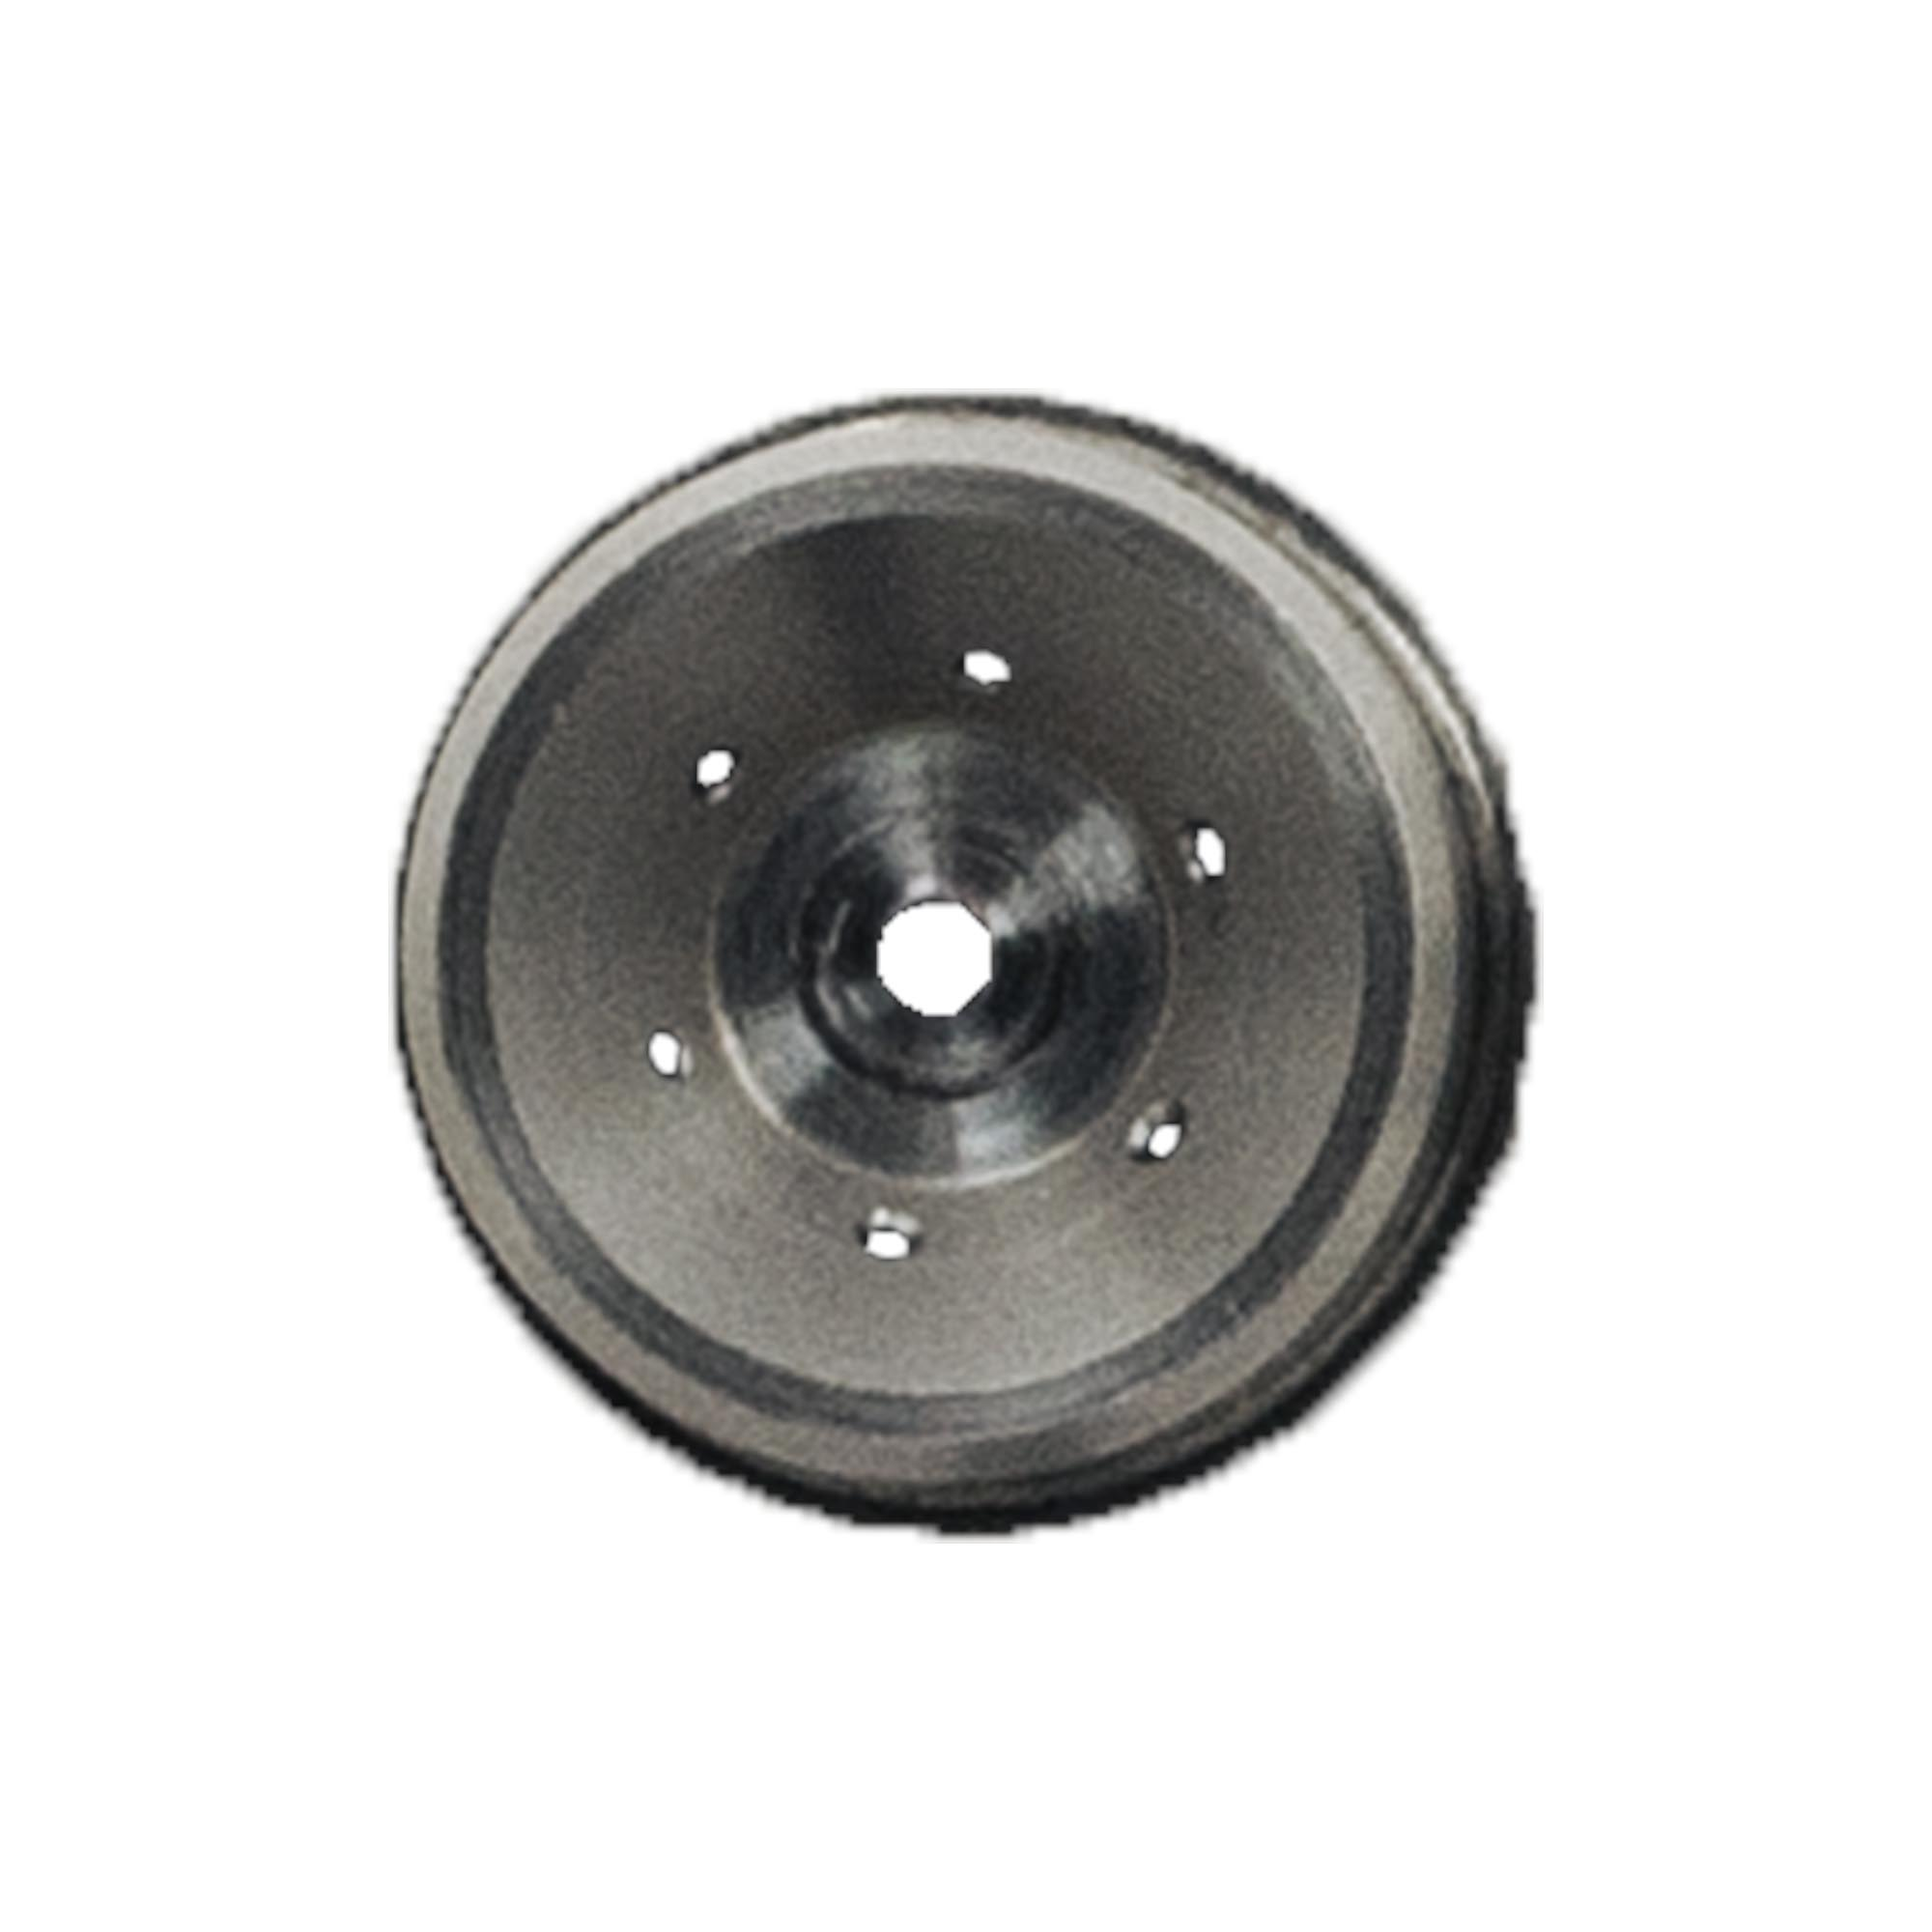 Model 901203-R10 Air Cap for ER1020SS